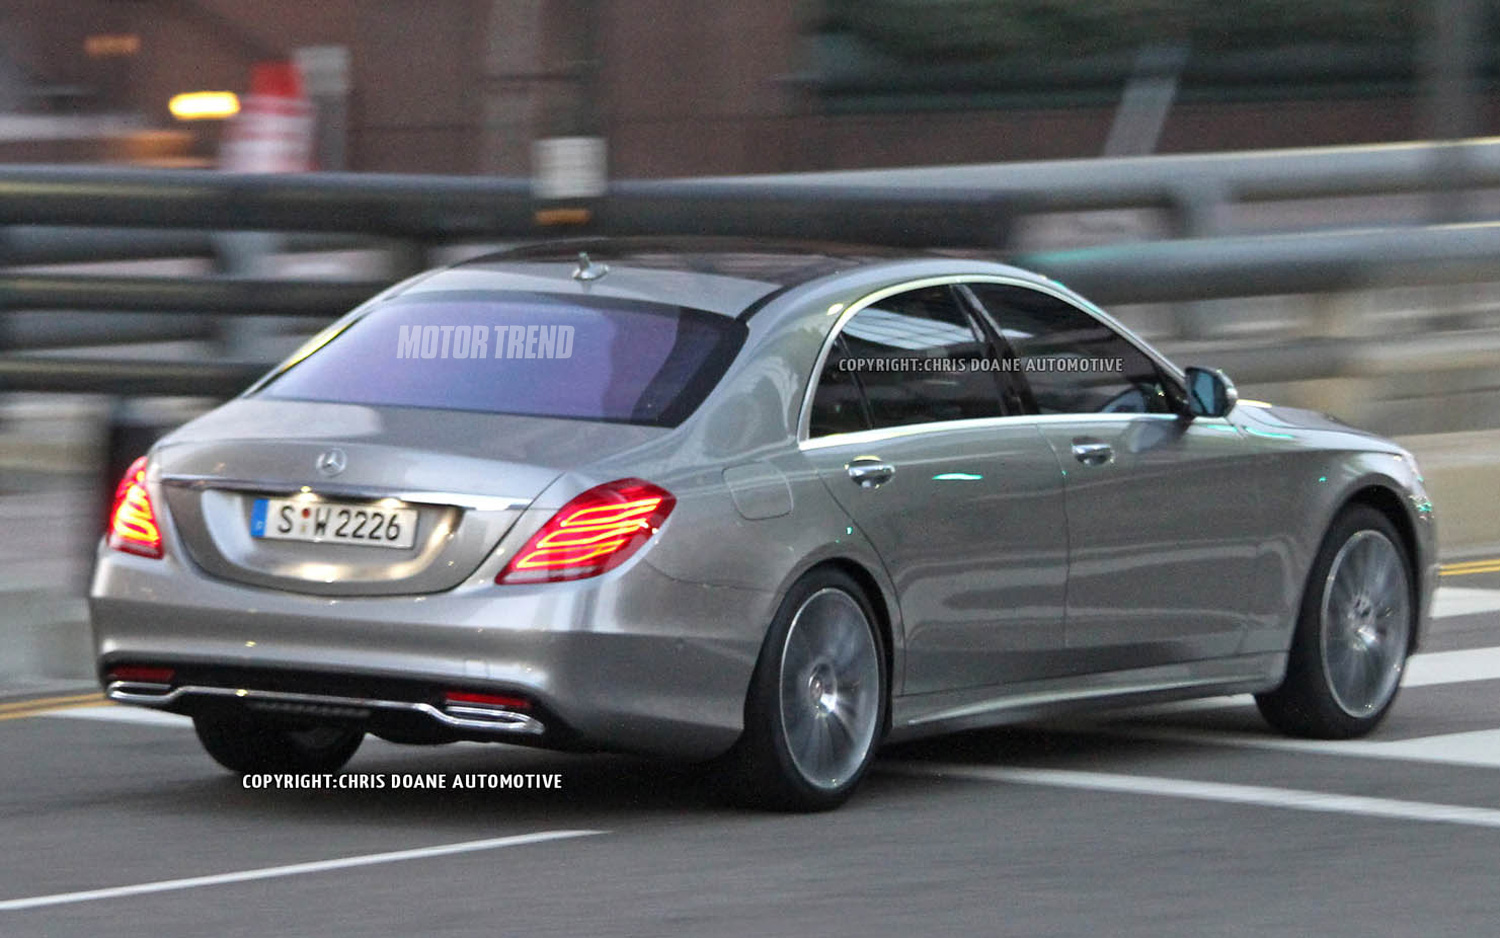 Exceptional 2014 MERCEDES BENZ S CLASS   Image #17